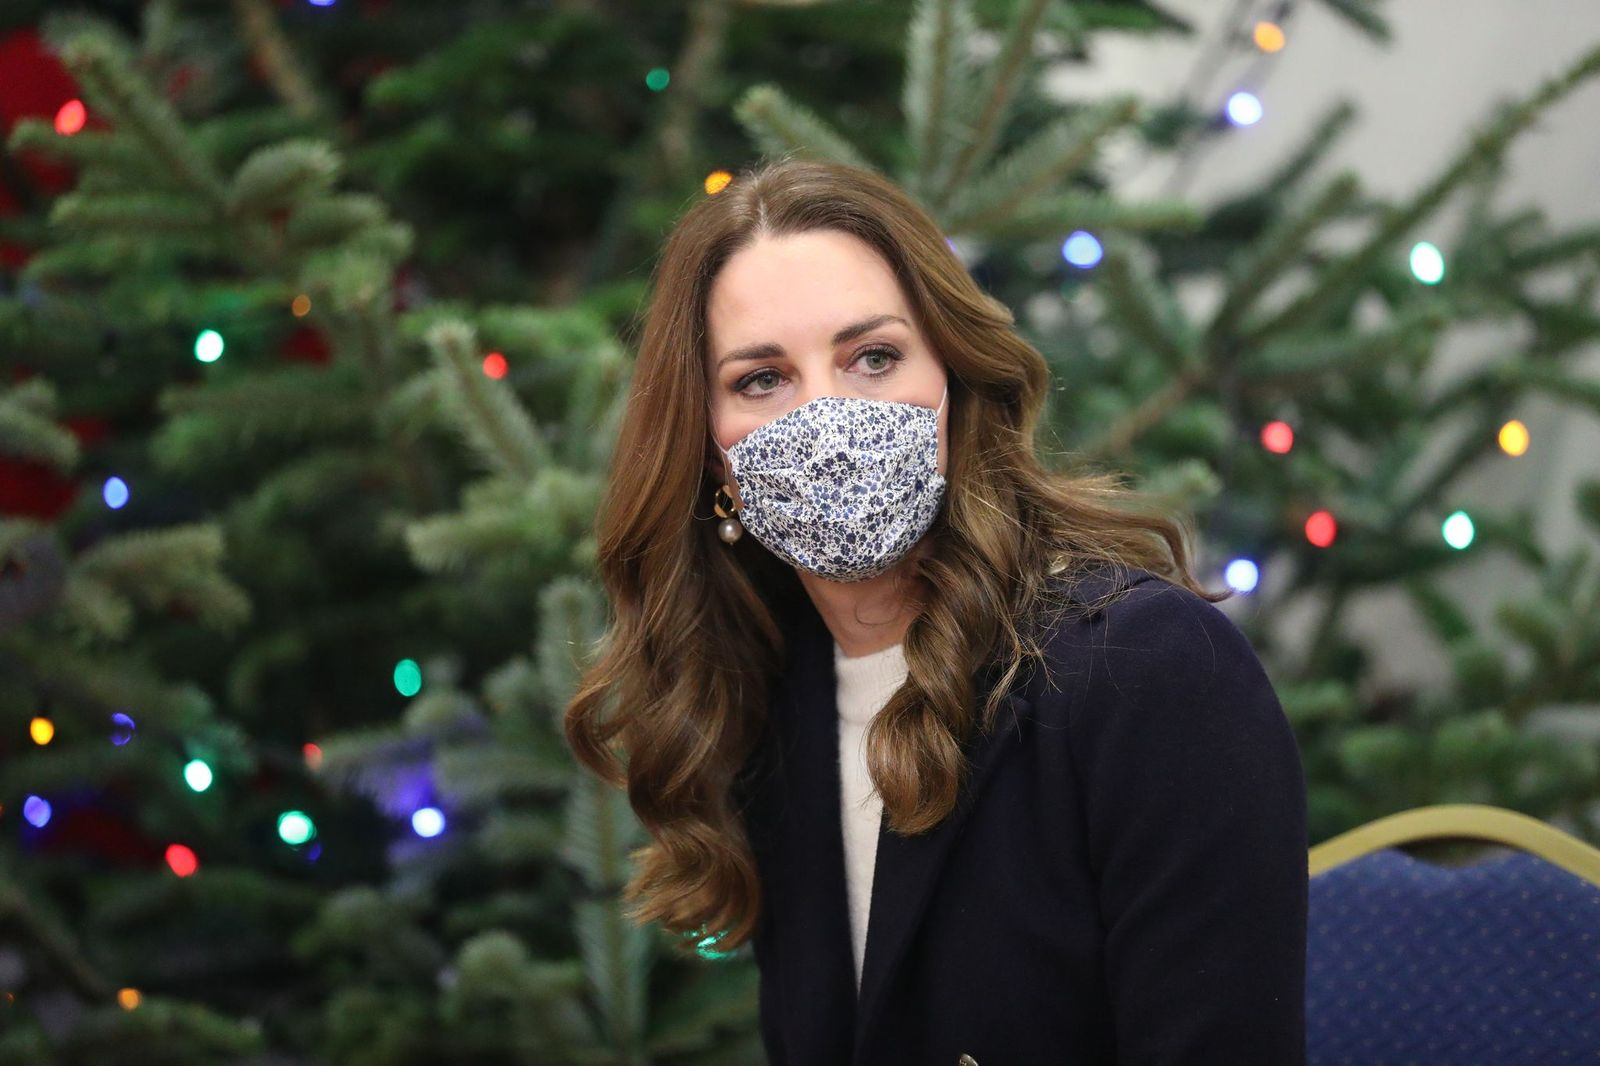 Catherine, The Duchess of Cambridge at Batley Community Centre, West Yorkshire meeting volunteers who have supported elderly members of the community throughout the coronavirus outbreak, on the second day of a three-day tour across the country, on December 7, 2020 | Photo: Getty Images